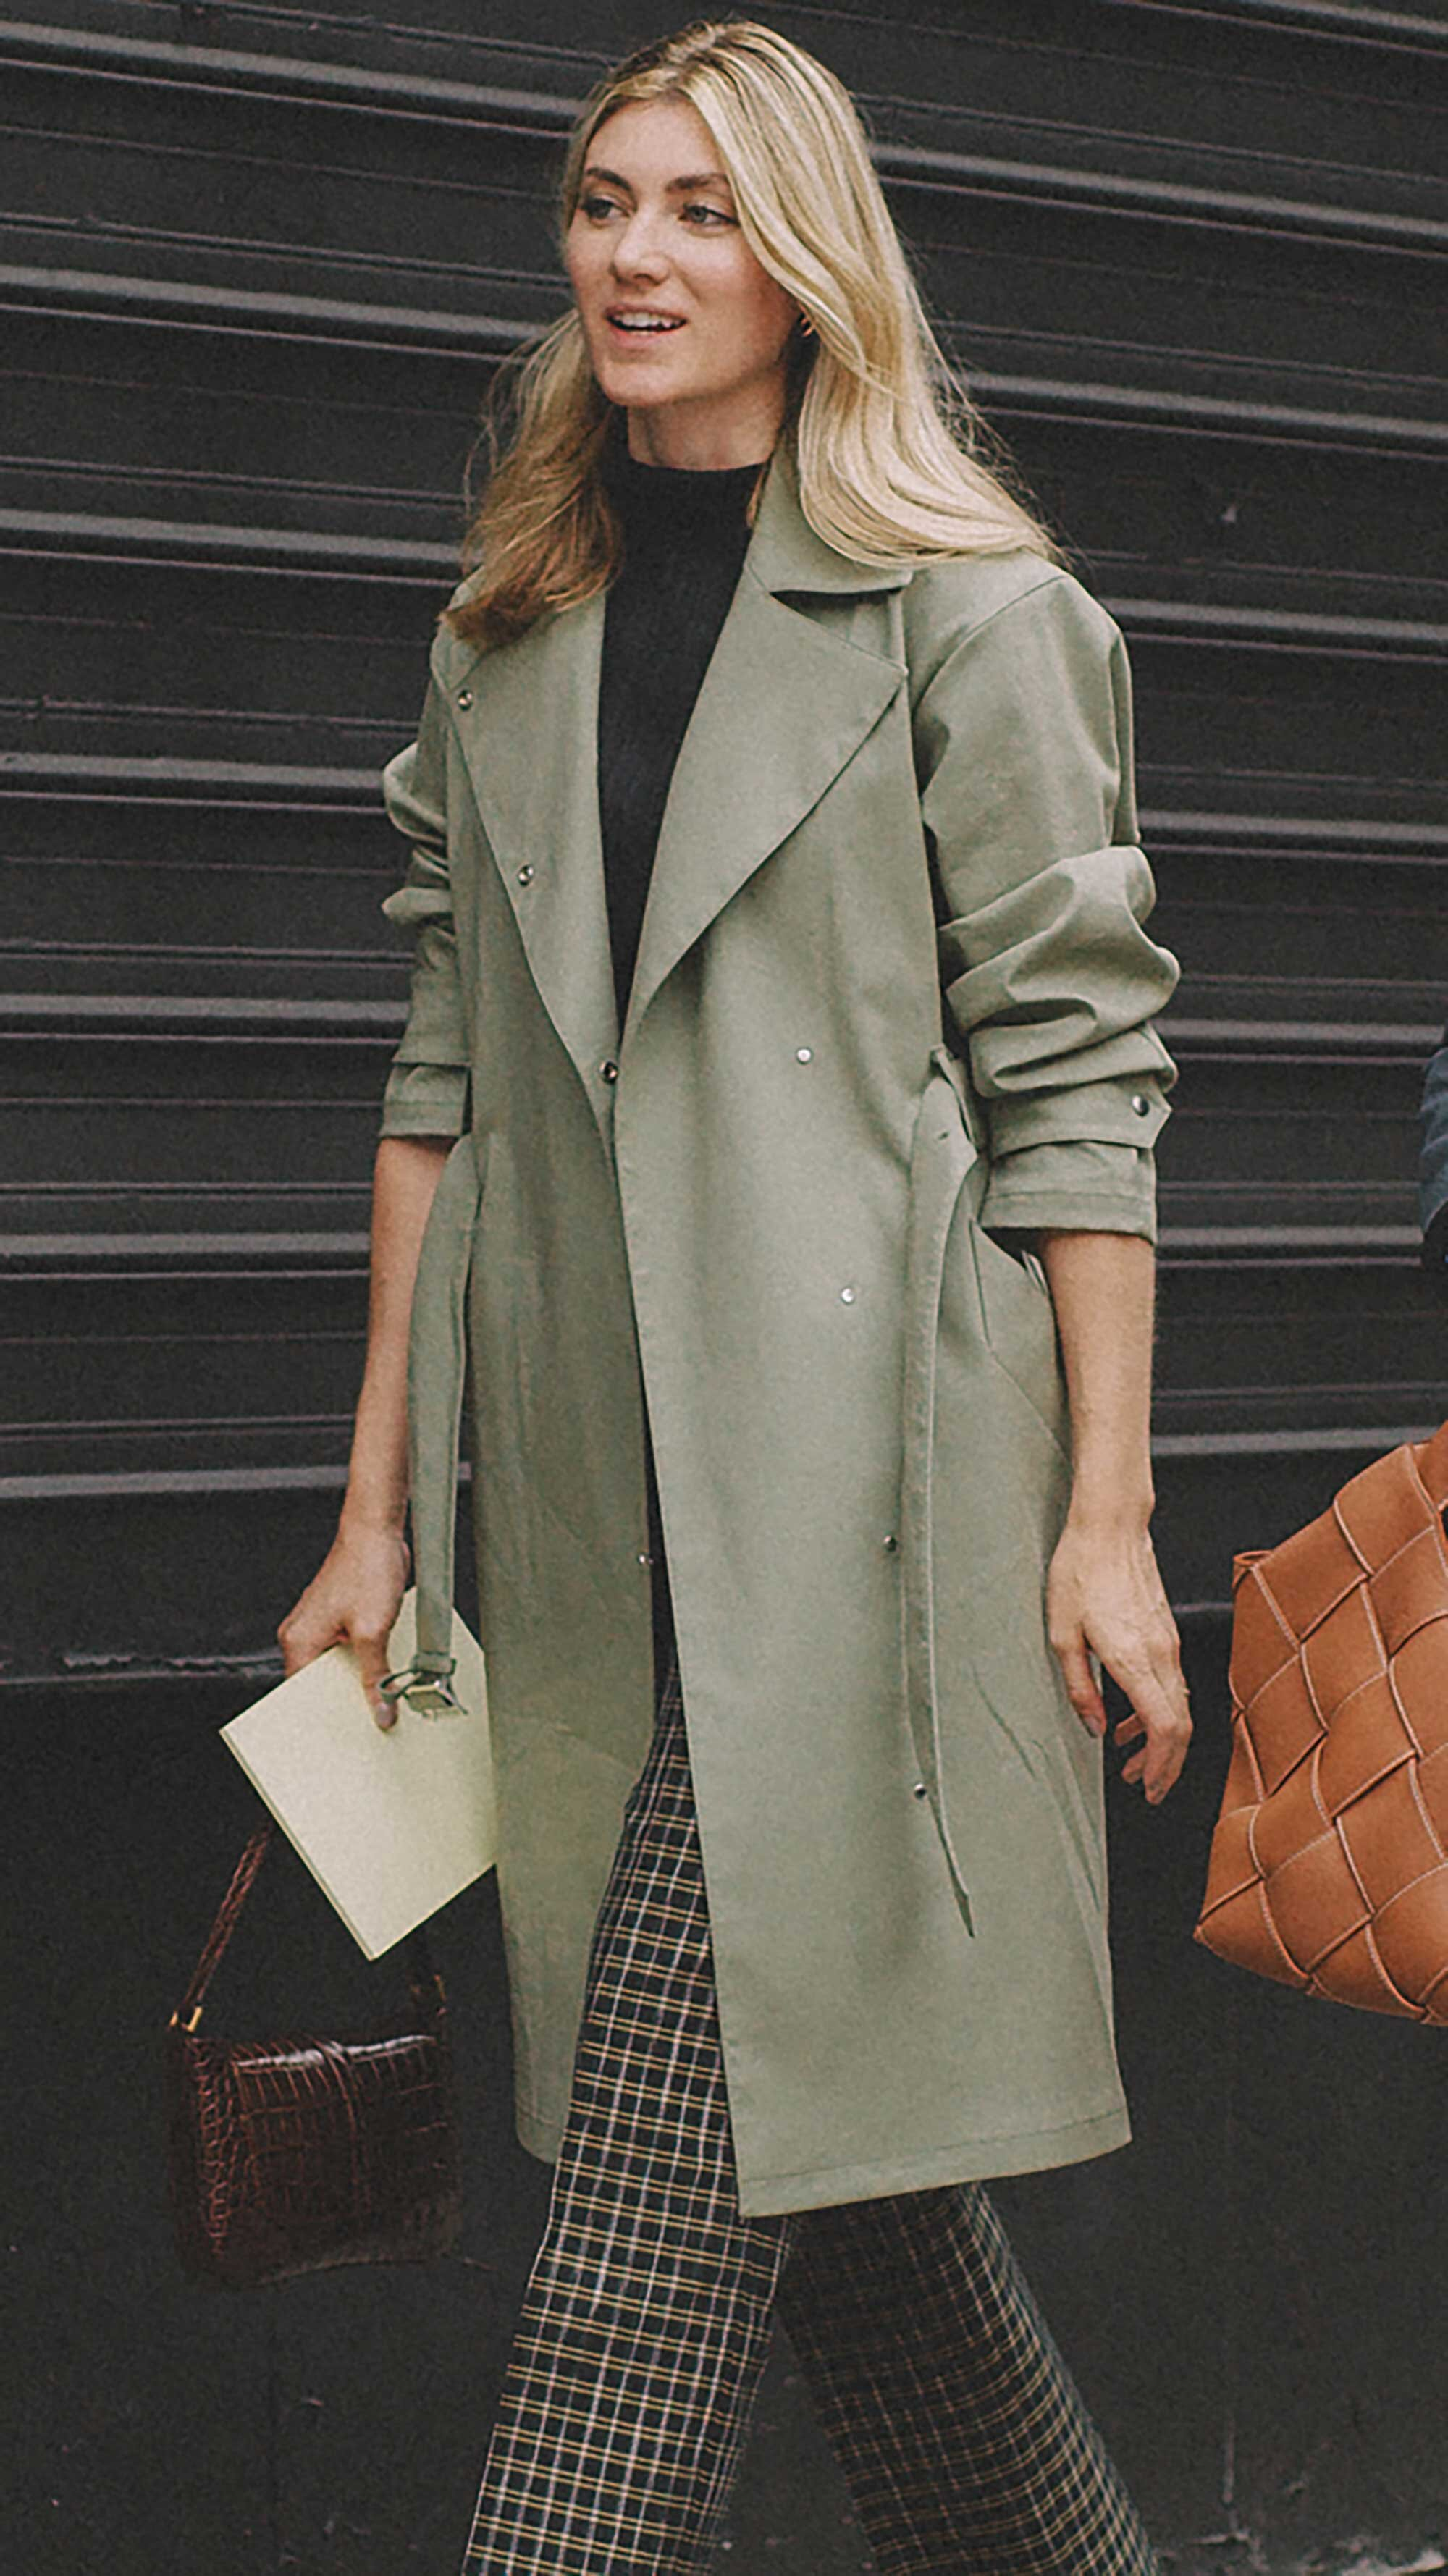 Best outfits of New York Fashion Week street style -36.jpg